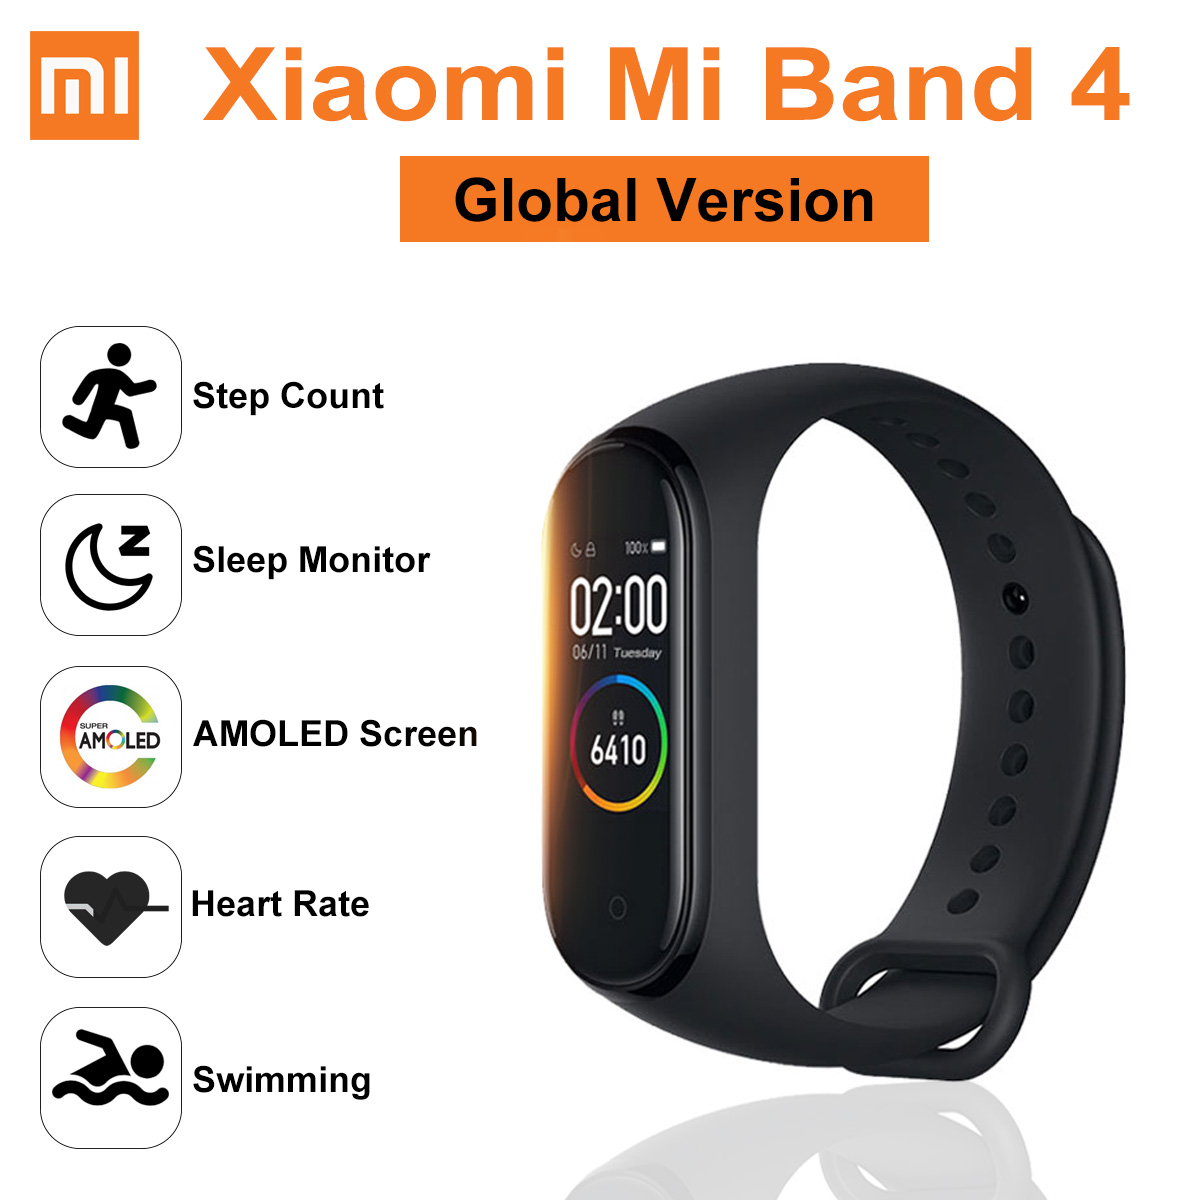 GLOBALE VERSION Original Xiao mi mi Band 4 <font><b>Smart</b></font> Uhr Armband Amoled bluetooth 5,0 Wasserdicht Herz Rate Fitness Sport Armband image